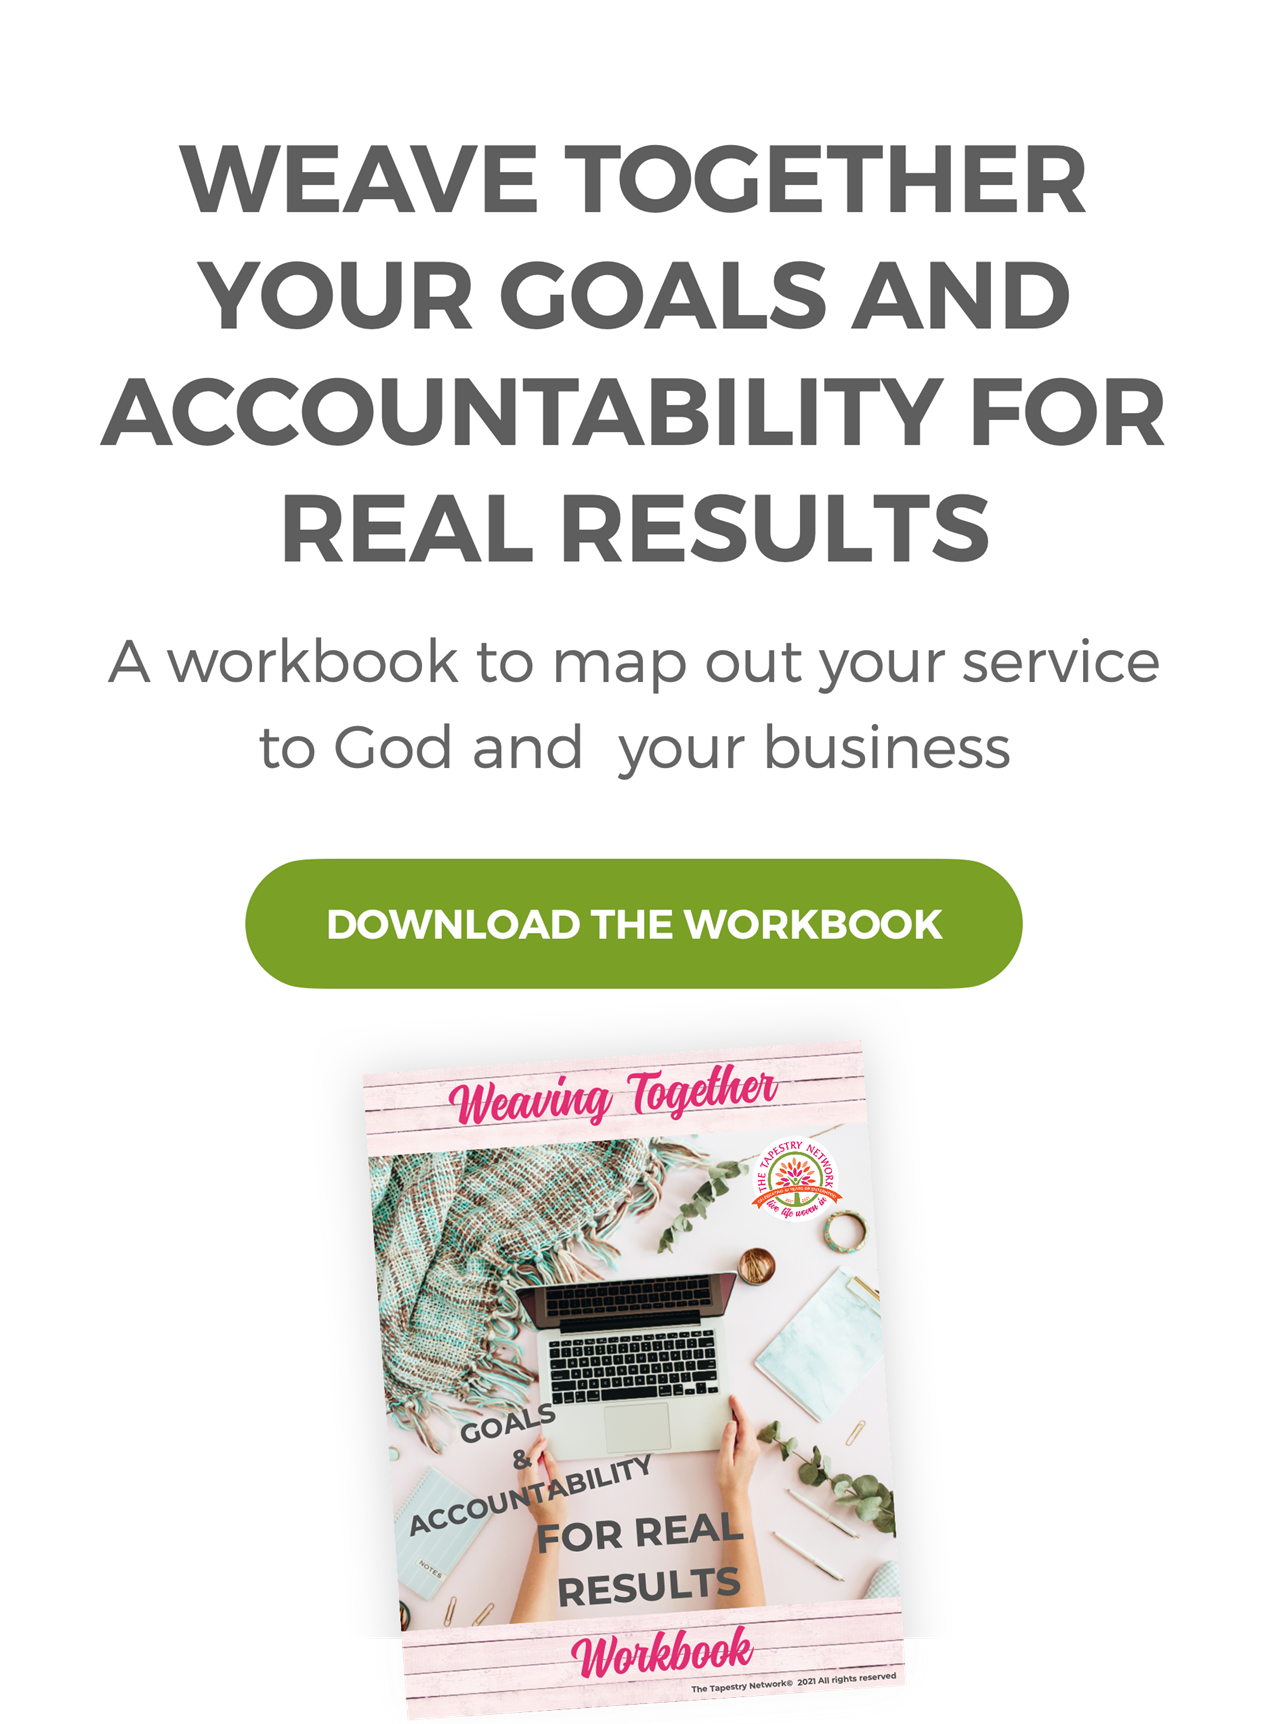 Download the Workbook - Weave Together Your Goals and Accountability for Real Results